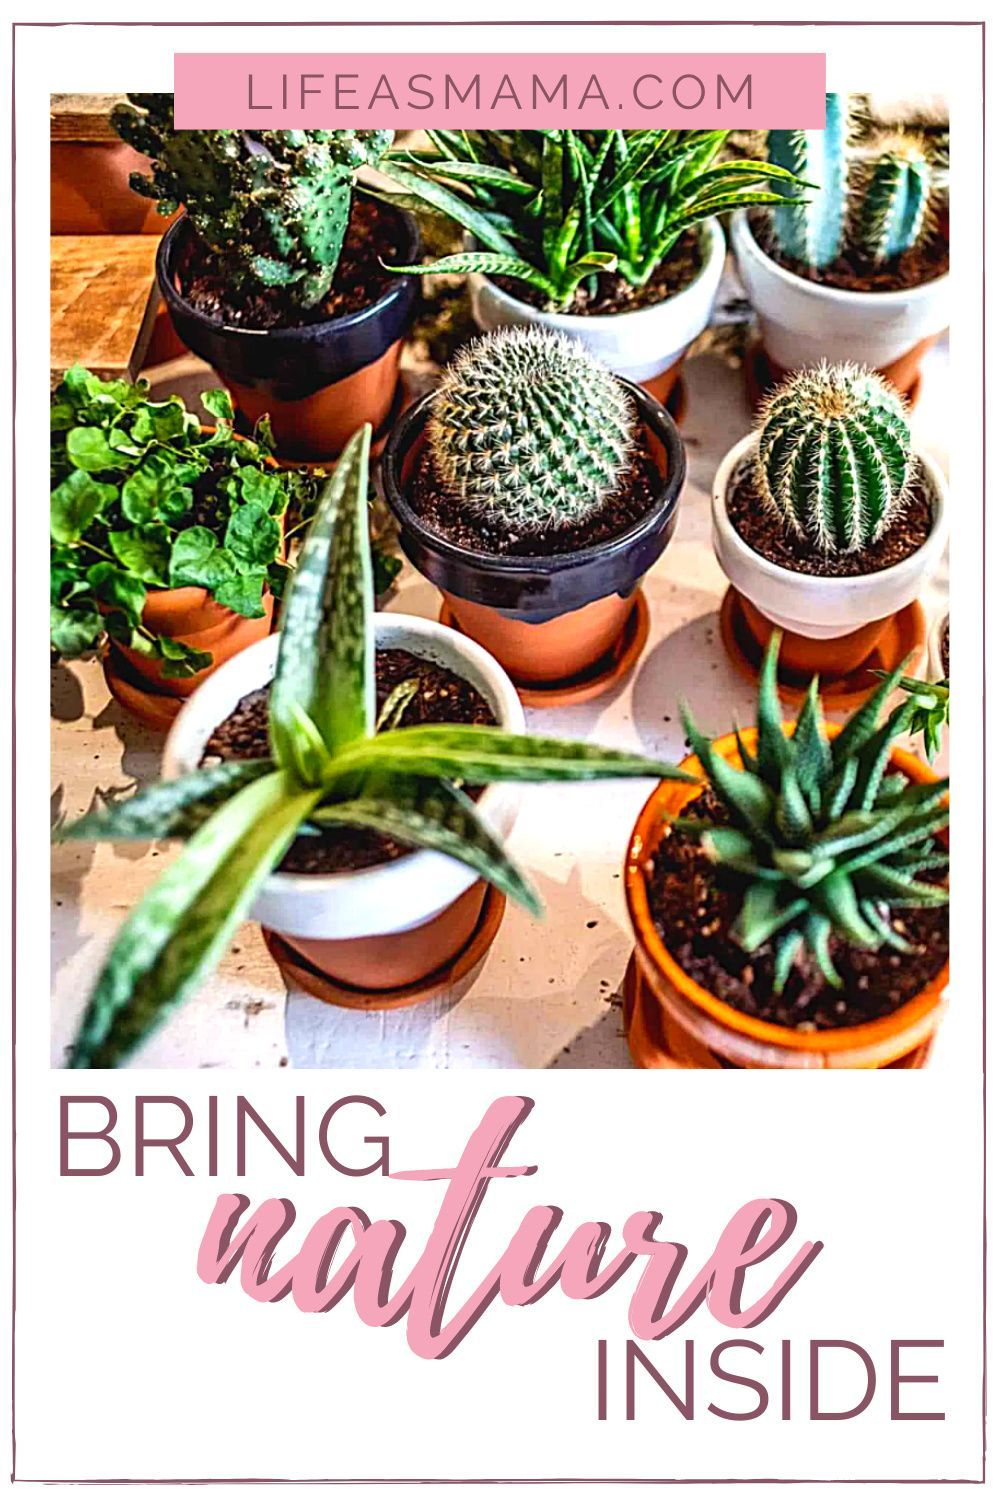 Your home is your place of peace. Bringing nature into your home helps create a sanctuary within your walls. Following some simple tips and tricks will help you bring create the home you always needed. #natureinside #houseplants #decoratewithplants #lifeasmama